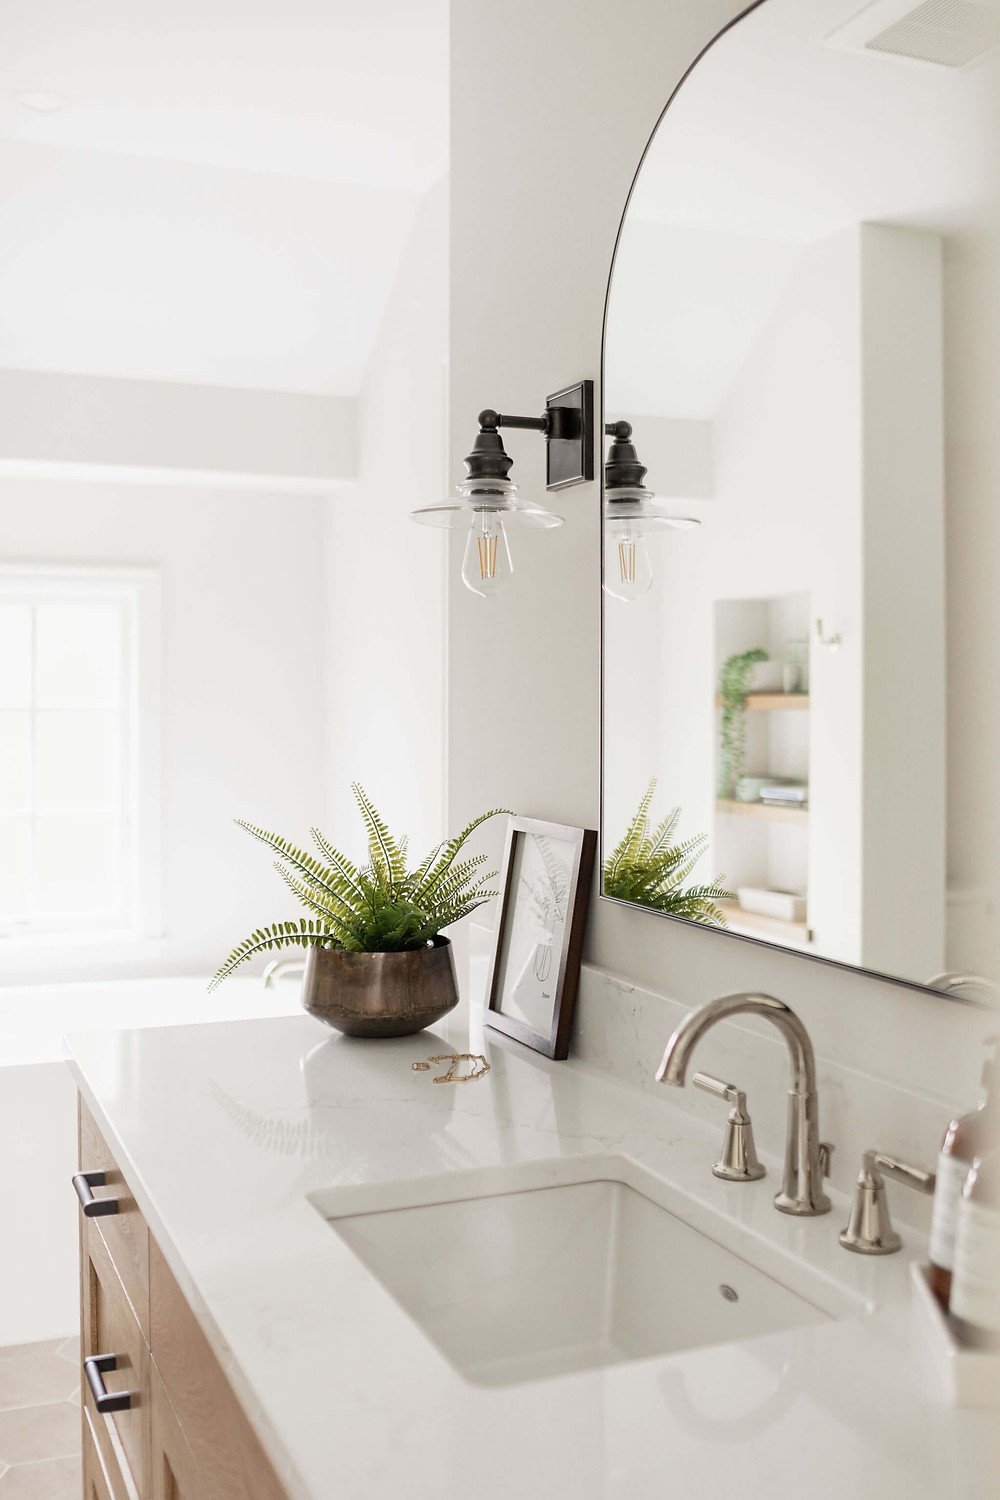 Primary owners suite bathroom custom vanity with white quartz countertop, polished nickel sink faucet and black industrial inspired wall sconces